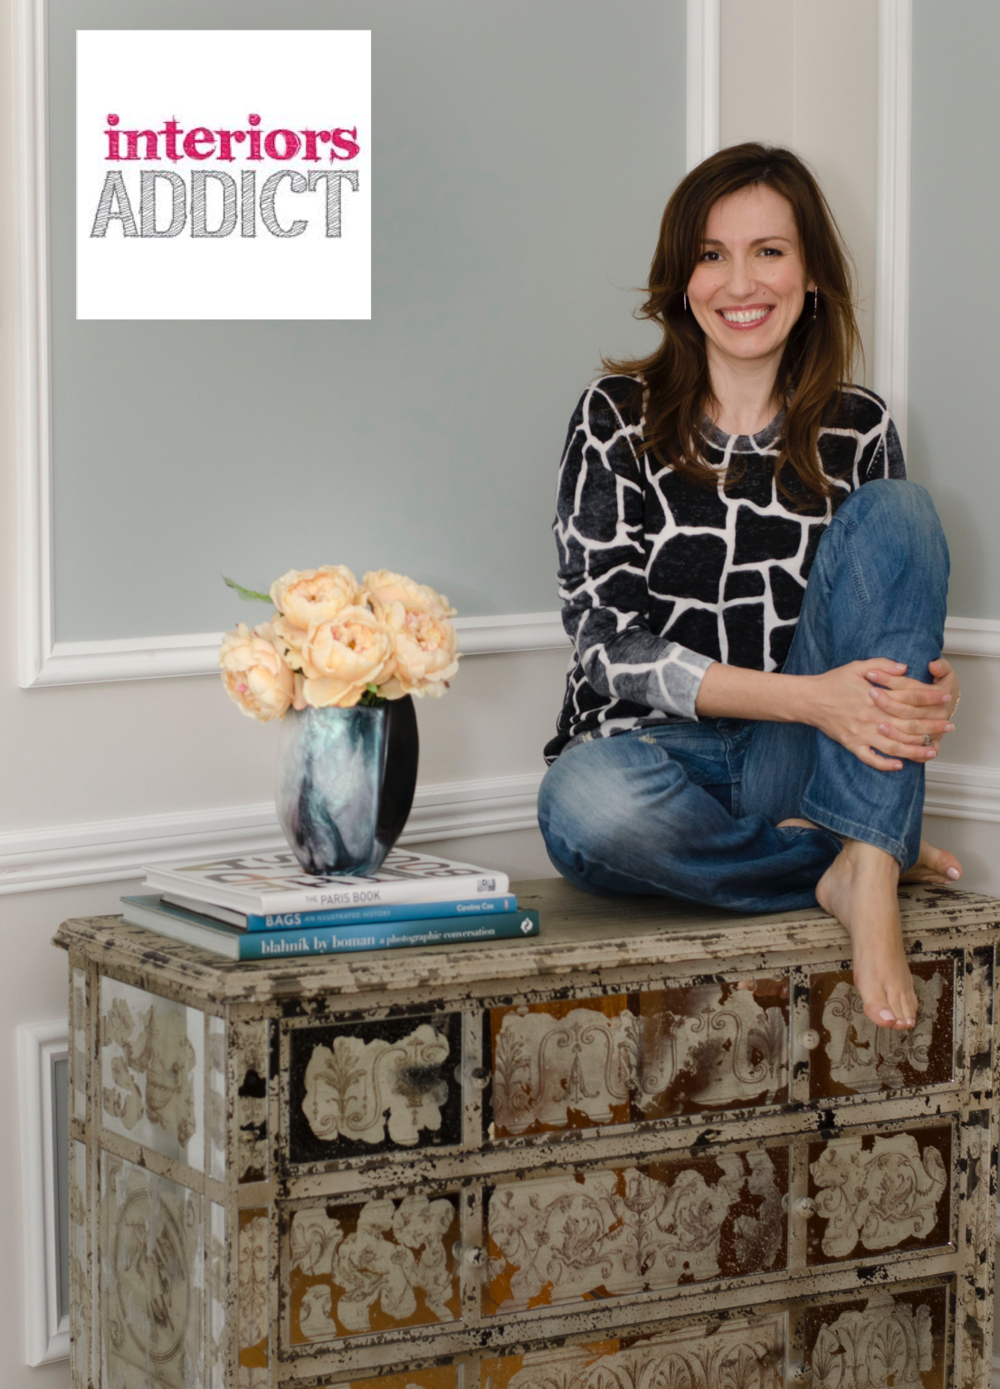 INTERIORS ADDICT  - August 2014  FEATURE: House Tour with Interior Designer Ioanna Lennox